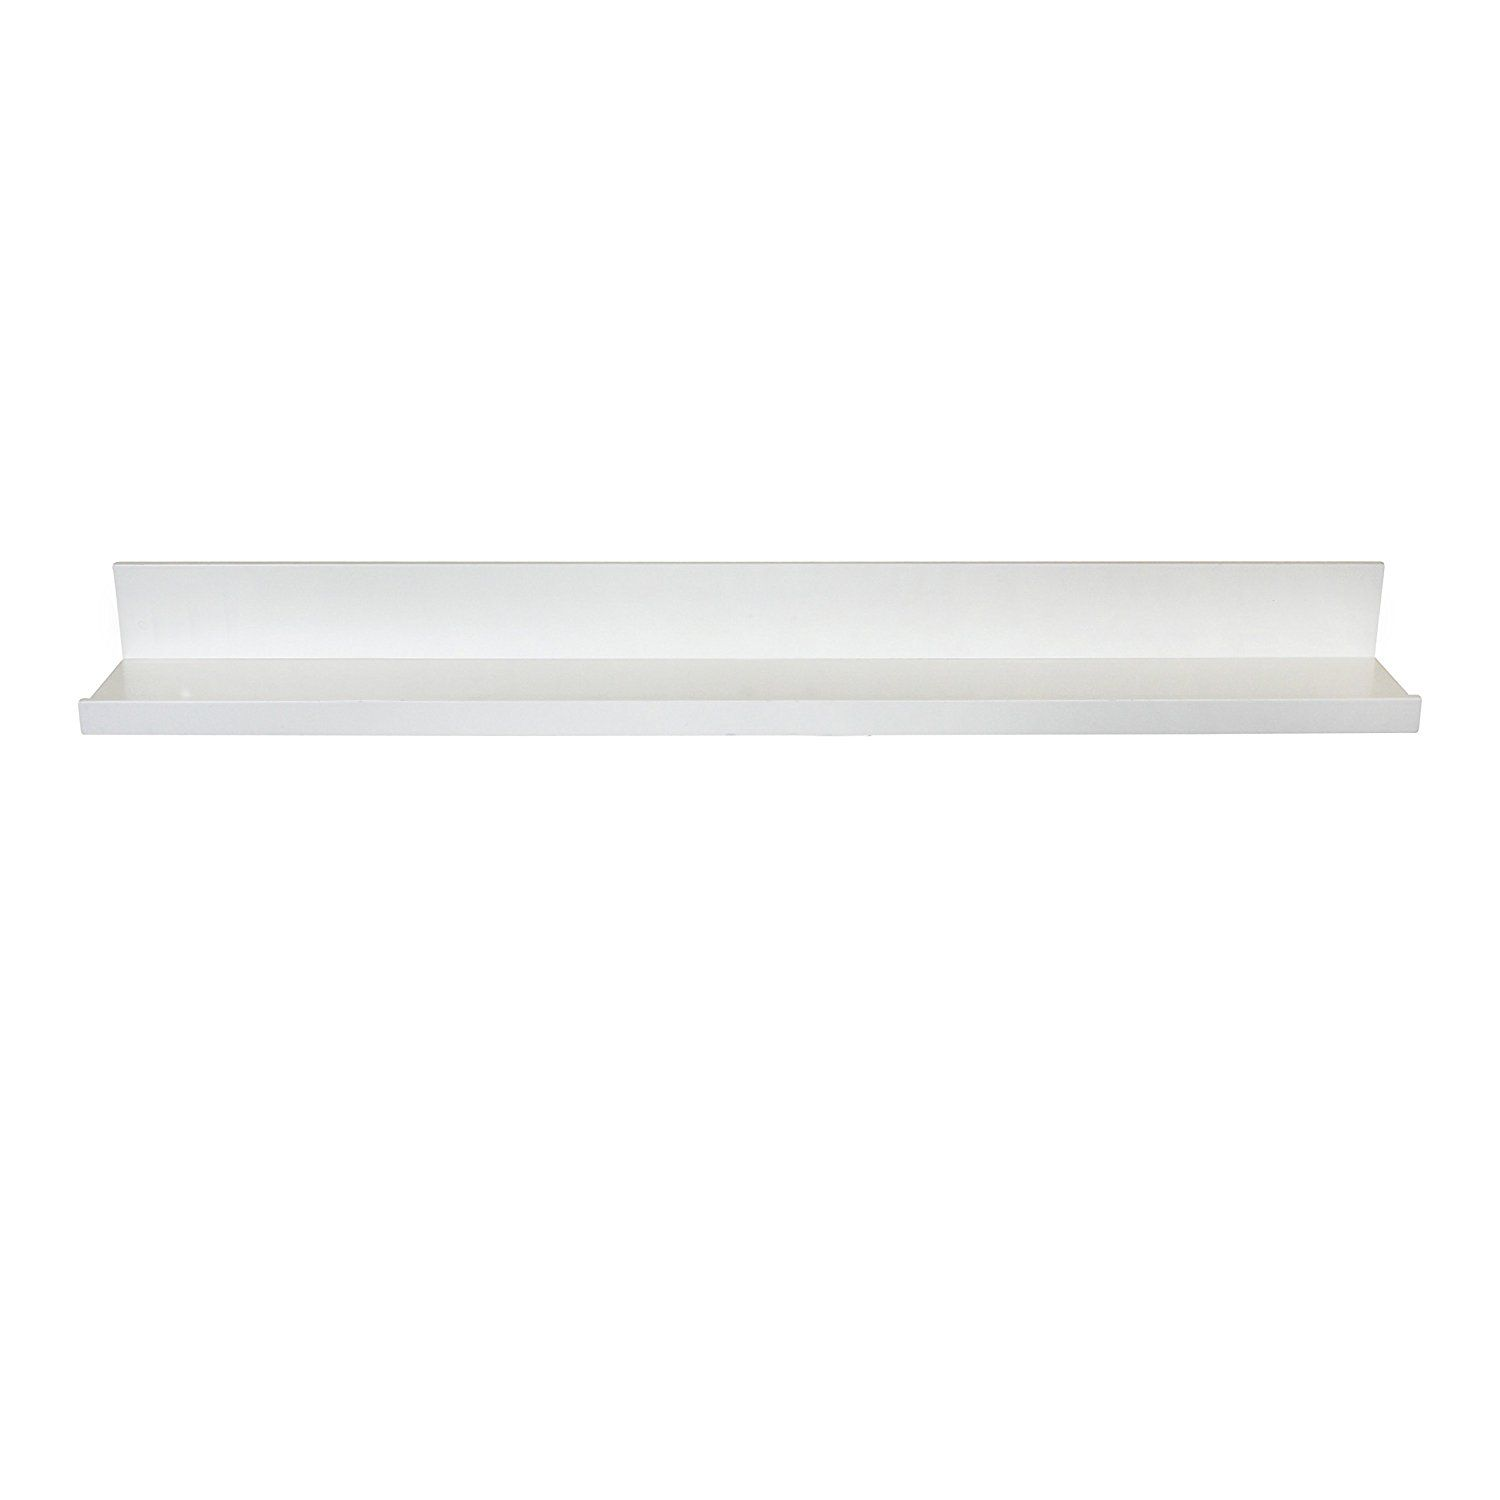 Amazon Com Inplace Shelving 9084678 Picture Ledge Floating Shelf 36 Inch Long White Home Kitchen Picture Shelves Floating Wall Wall Mounted Shelves